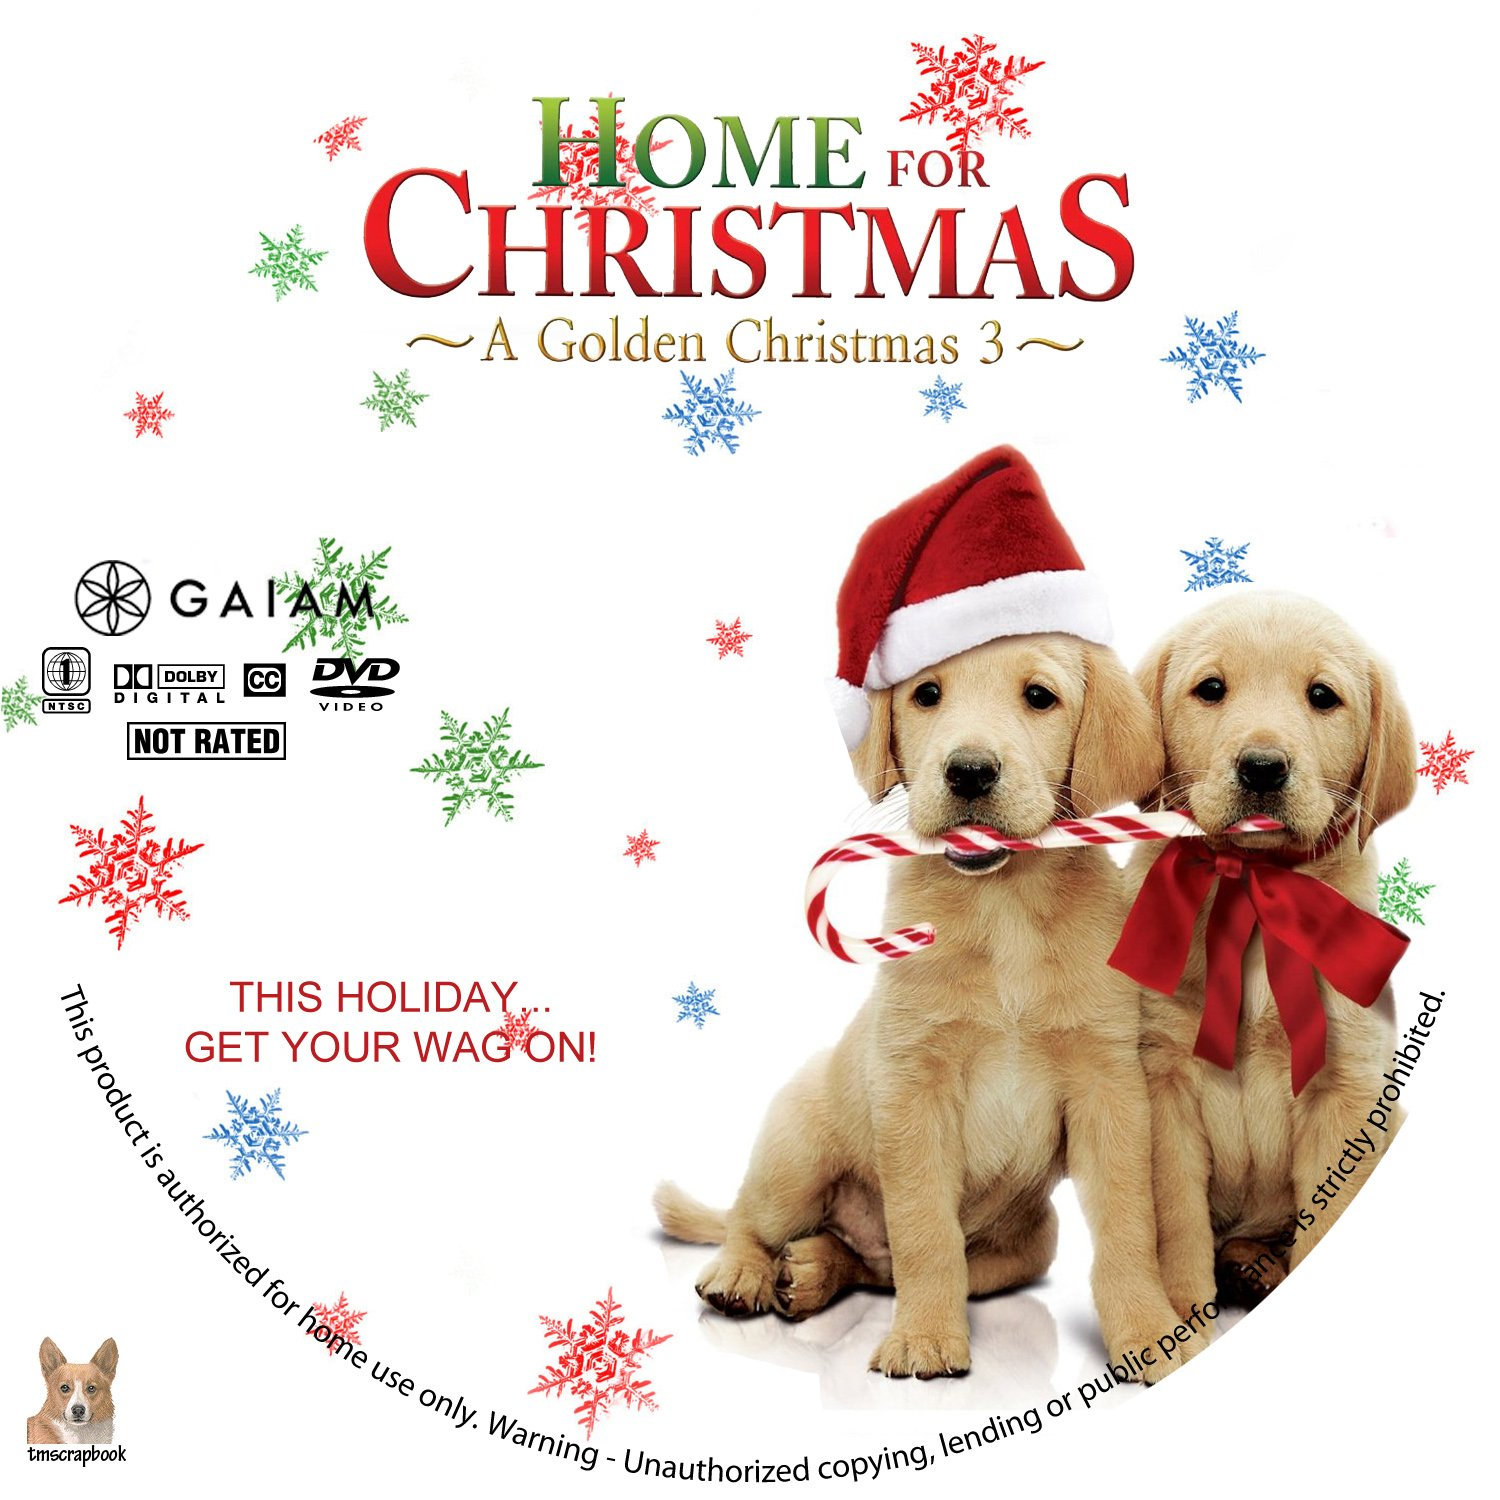 home for christmas a golden christmas 3 r1 custom label - Golden Christmas 3